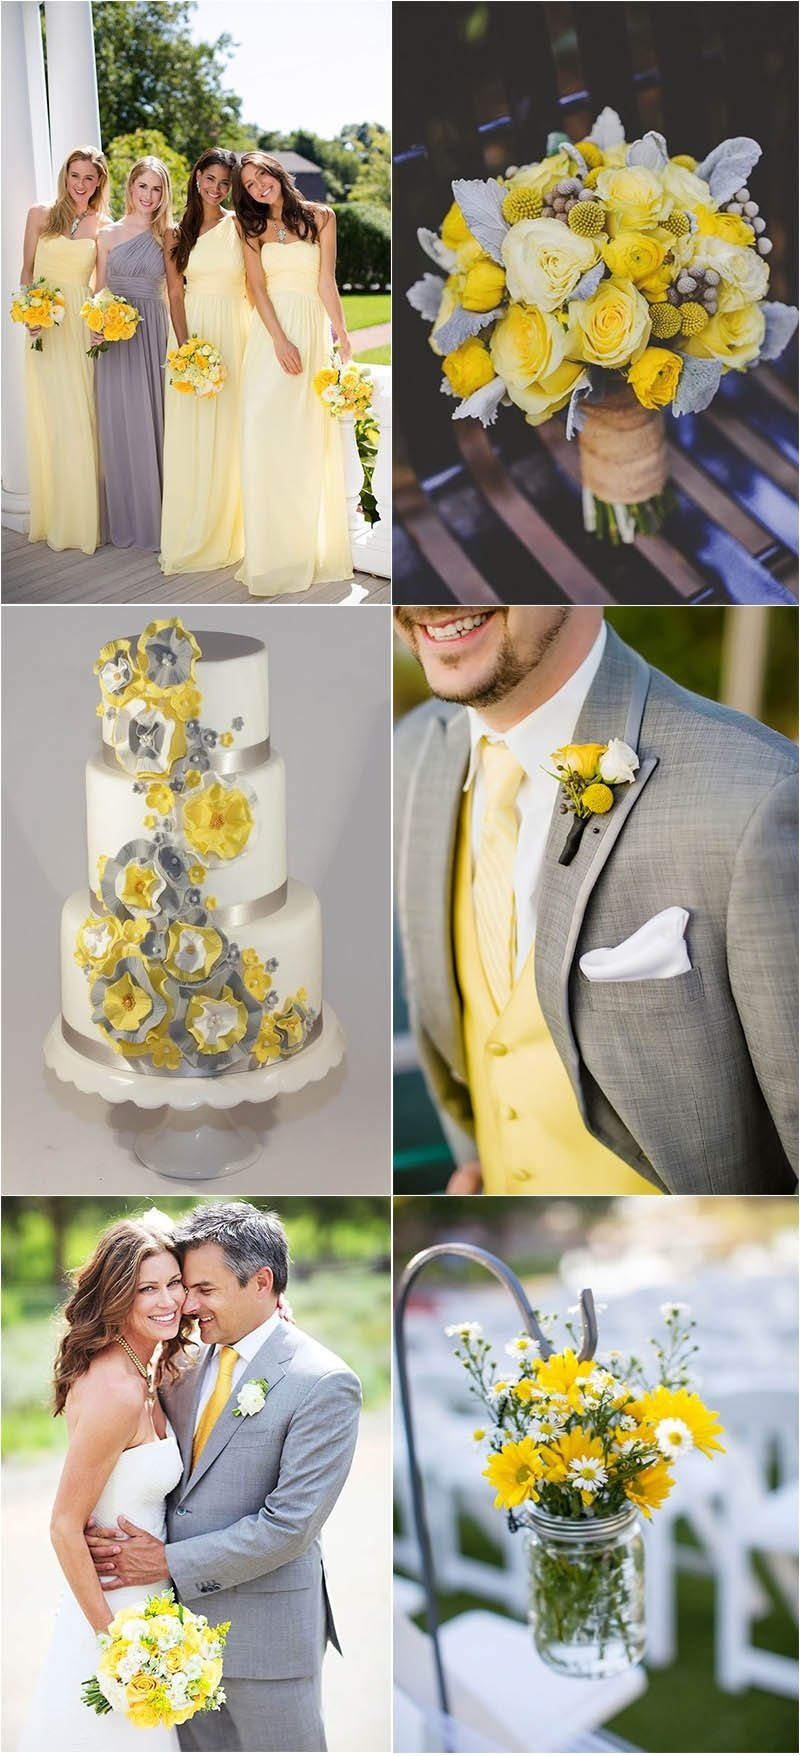 10 Most Recommended Grey And Yellow Wedding Ideas timeless grey wedding color palette ideas to inspire 2021